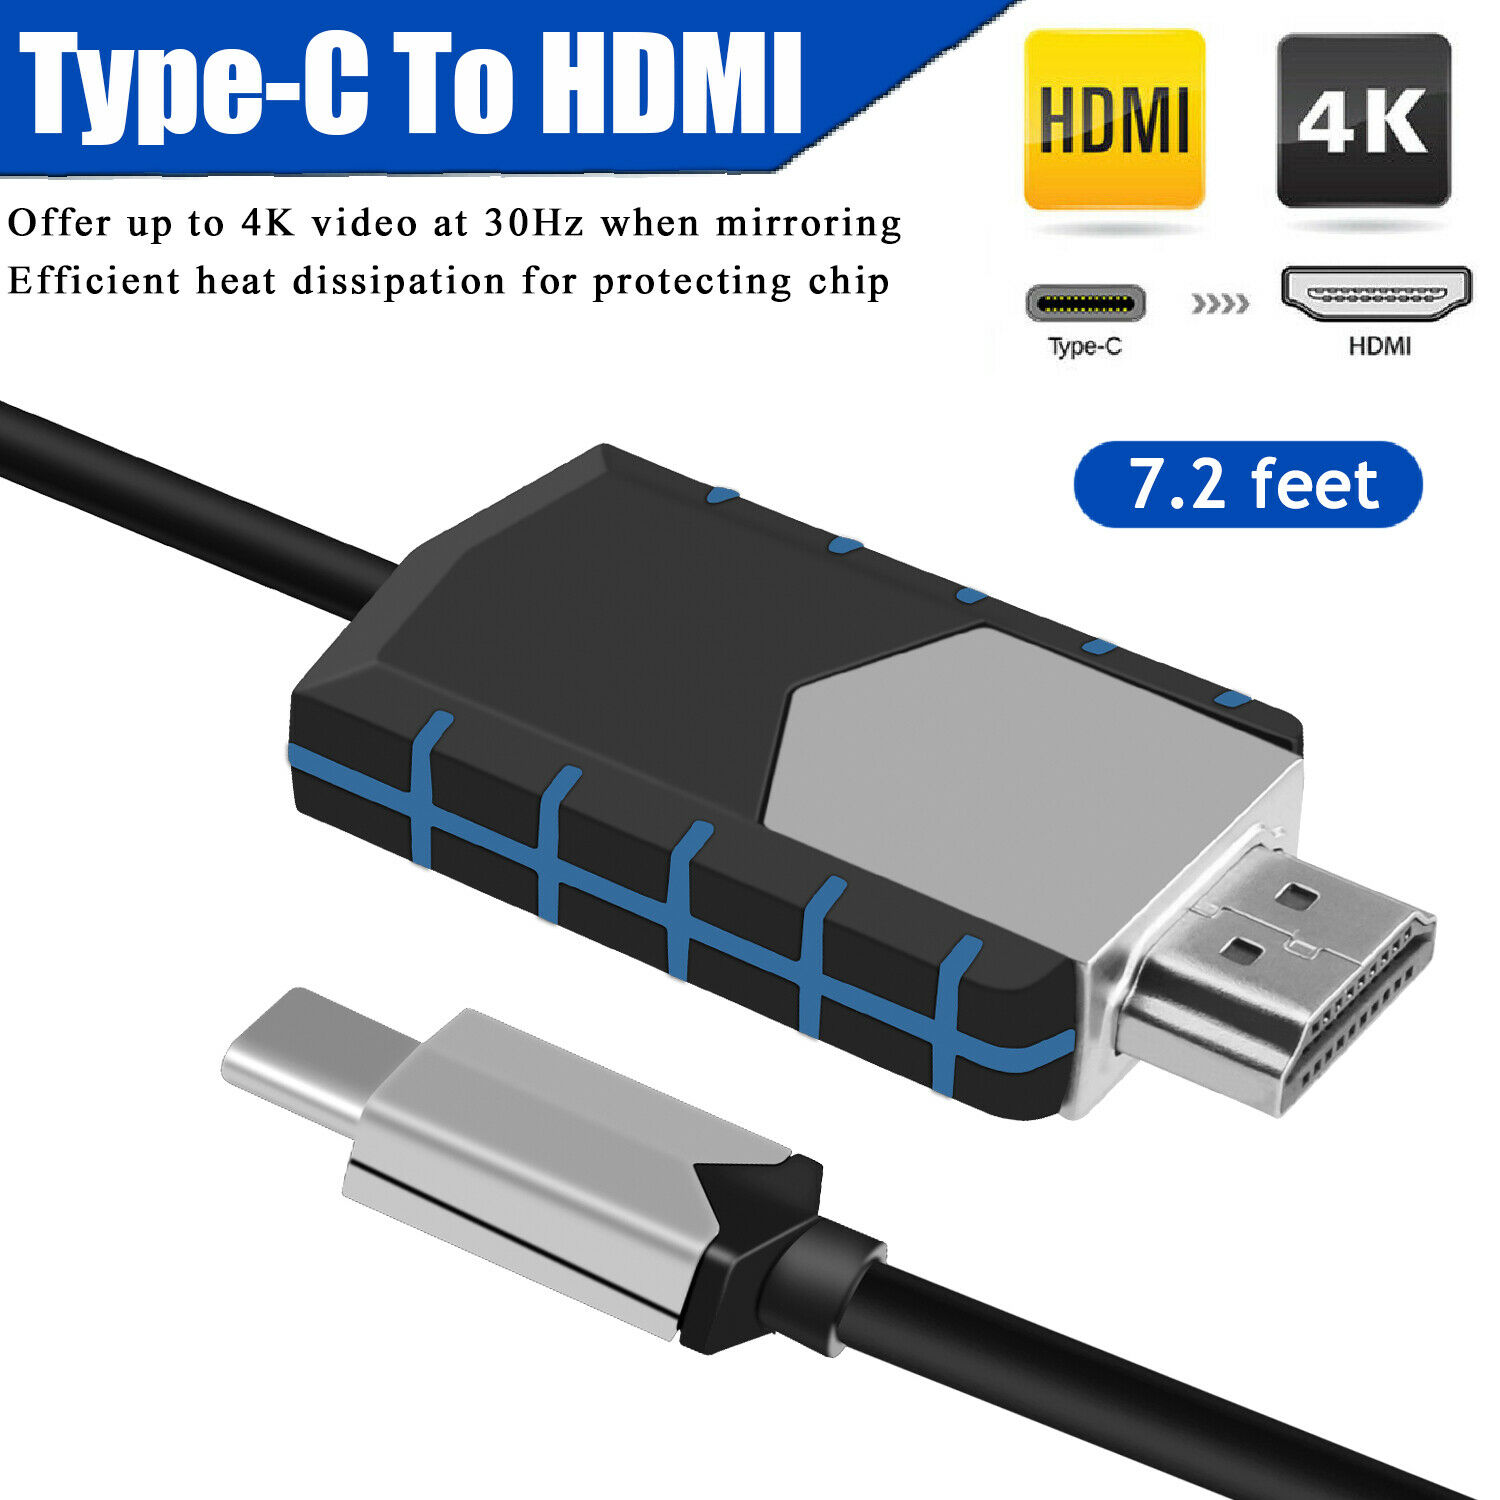 USB-C Type-C To <font><b>HDMI</b></font> <font><b>4K</b></font> 30Hz HDTV Adapter <font><b>Cable</b></font> For Huawei Samsung S10 S9 Note 9 Macbook <font><b>2.2</b></font> M 7.2ft image